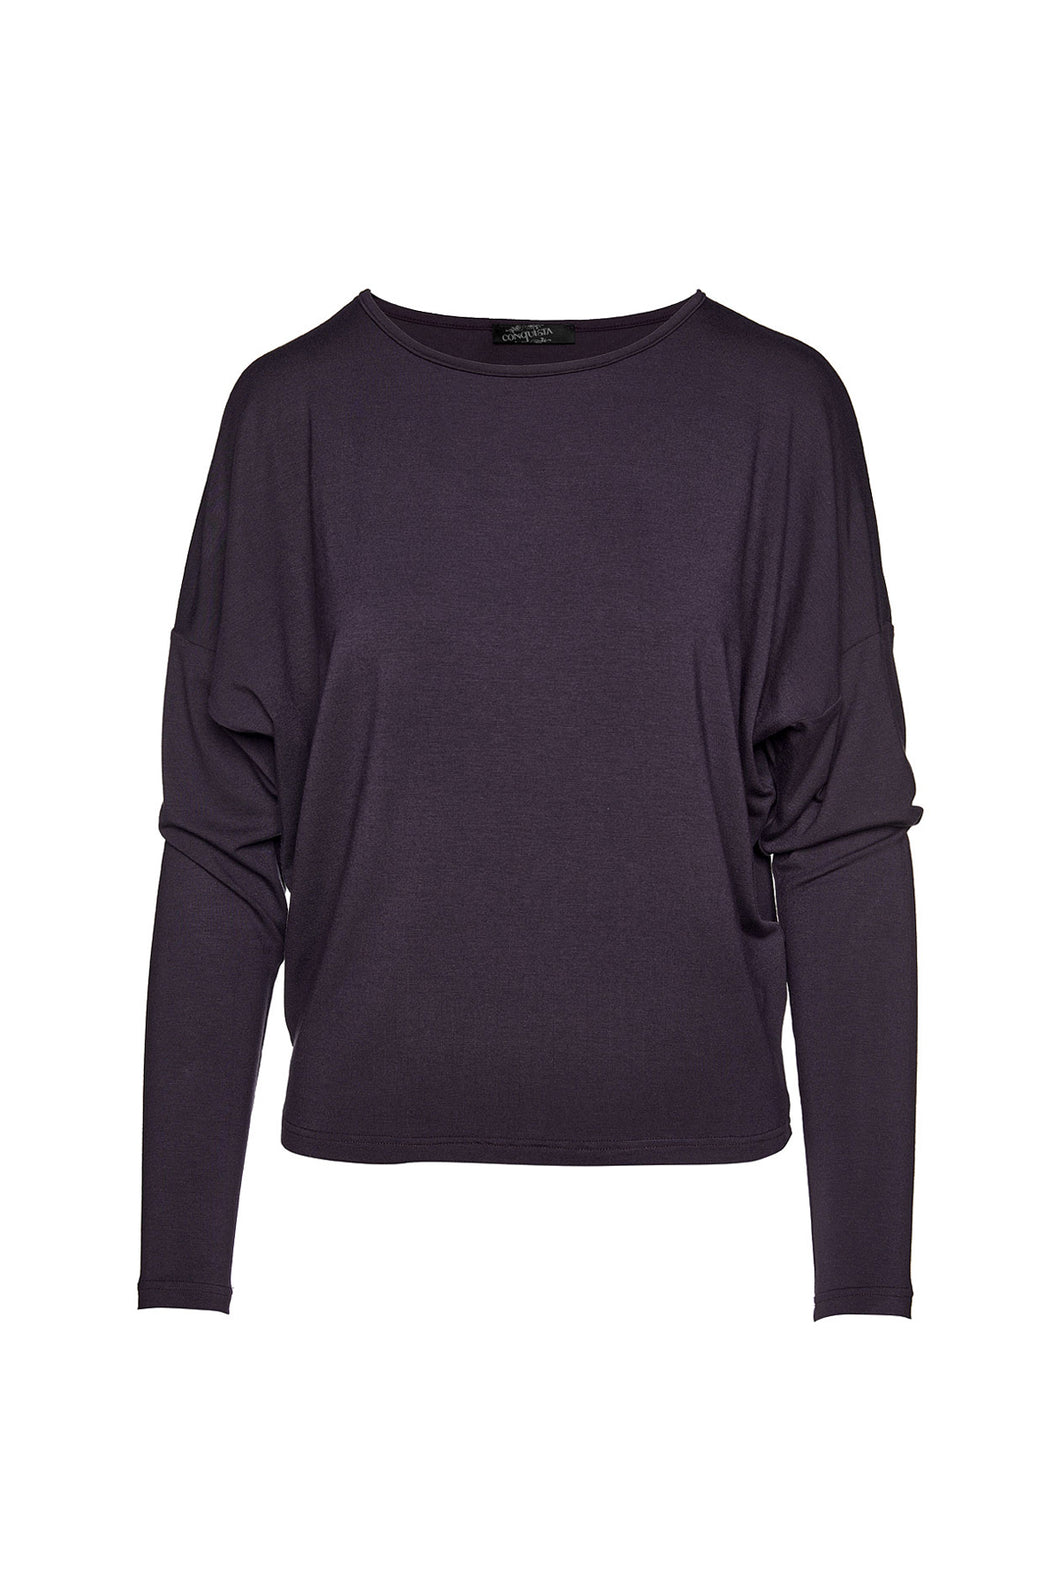 Ink Colour Micromodal Batwing Top